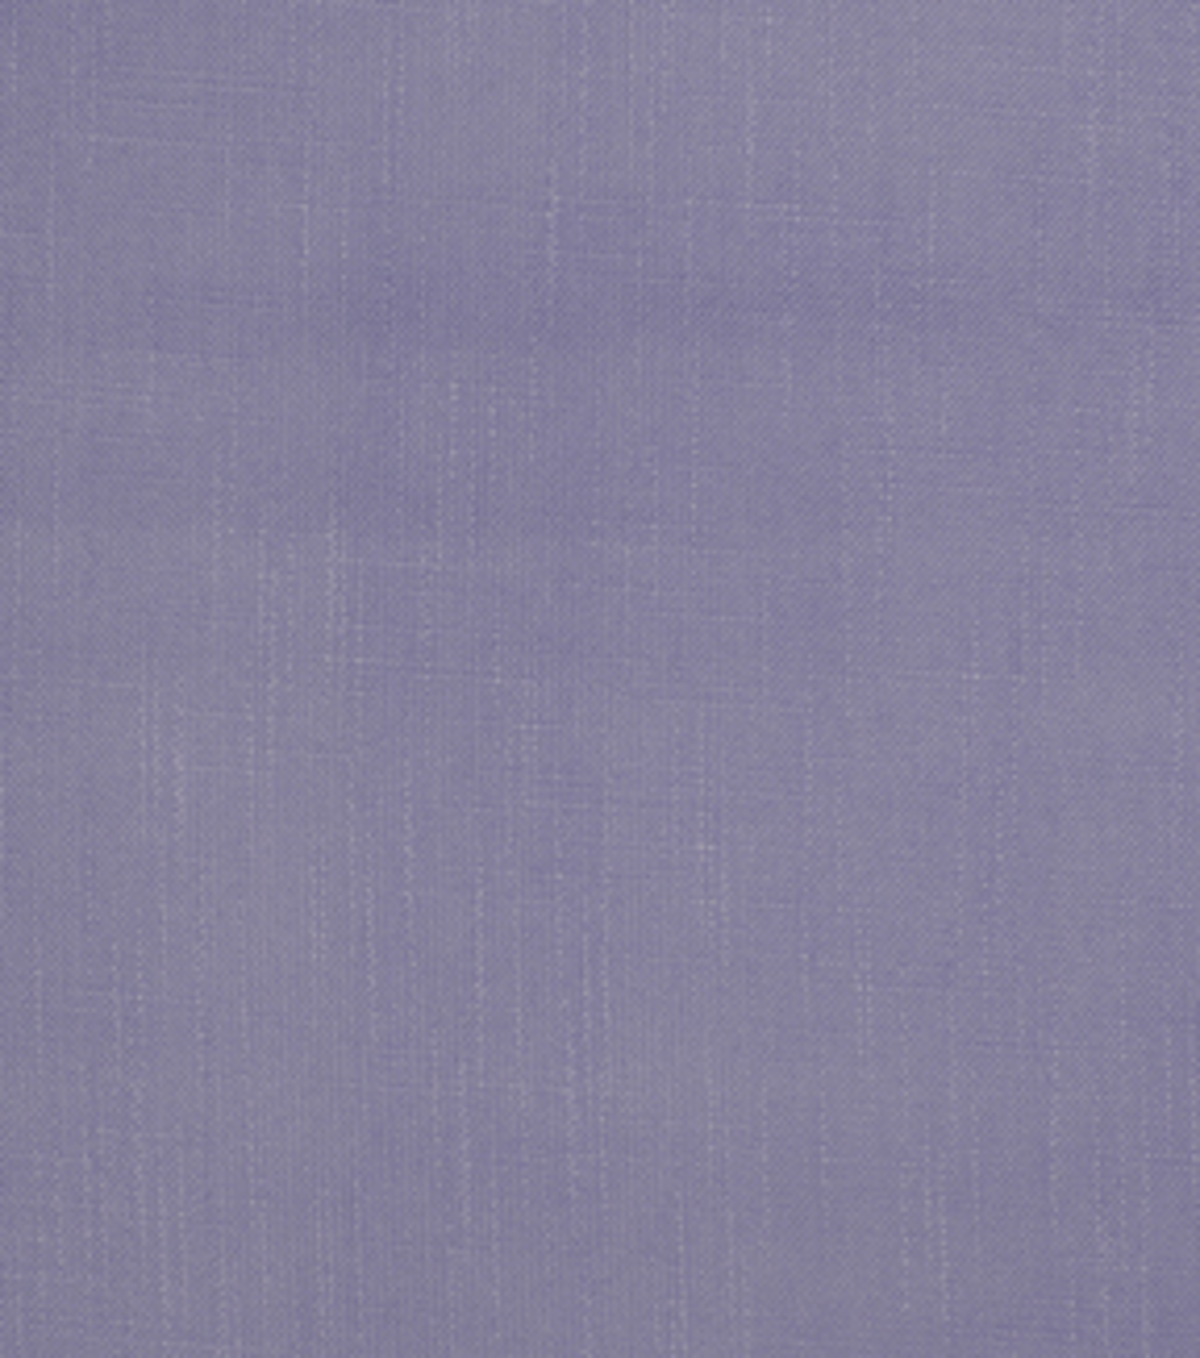 Home Decor 8\u0022x8\u0022 Fabric Swatch-Signature Series Gallantry Coastal